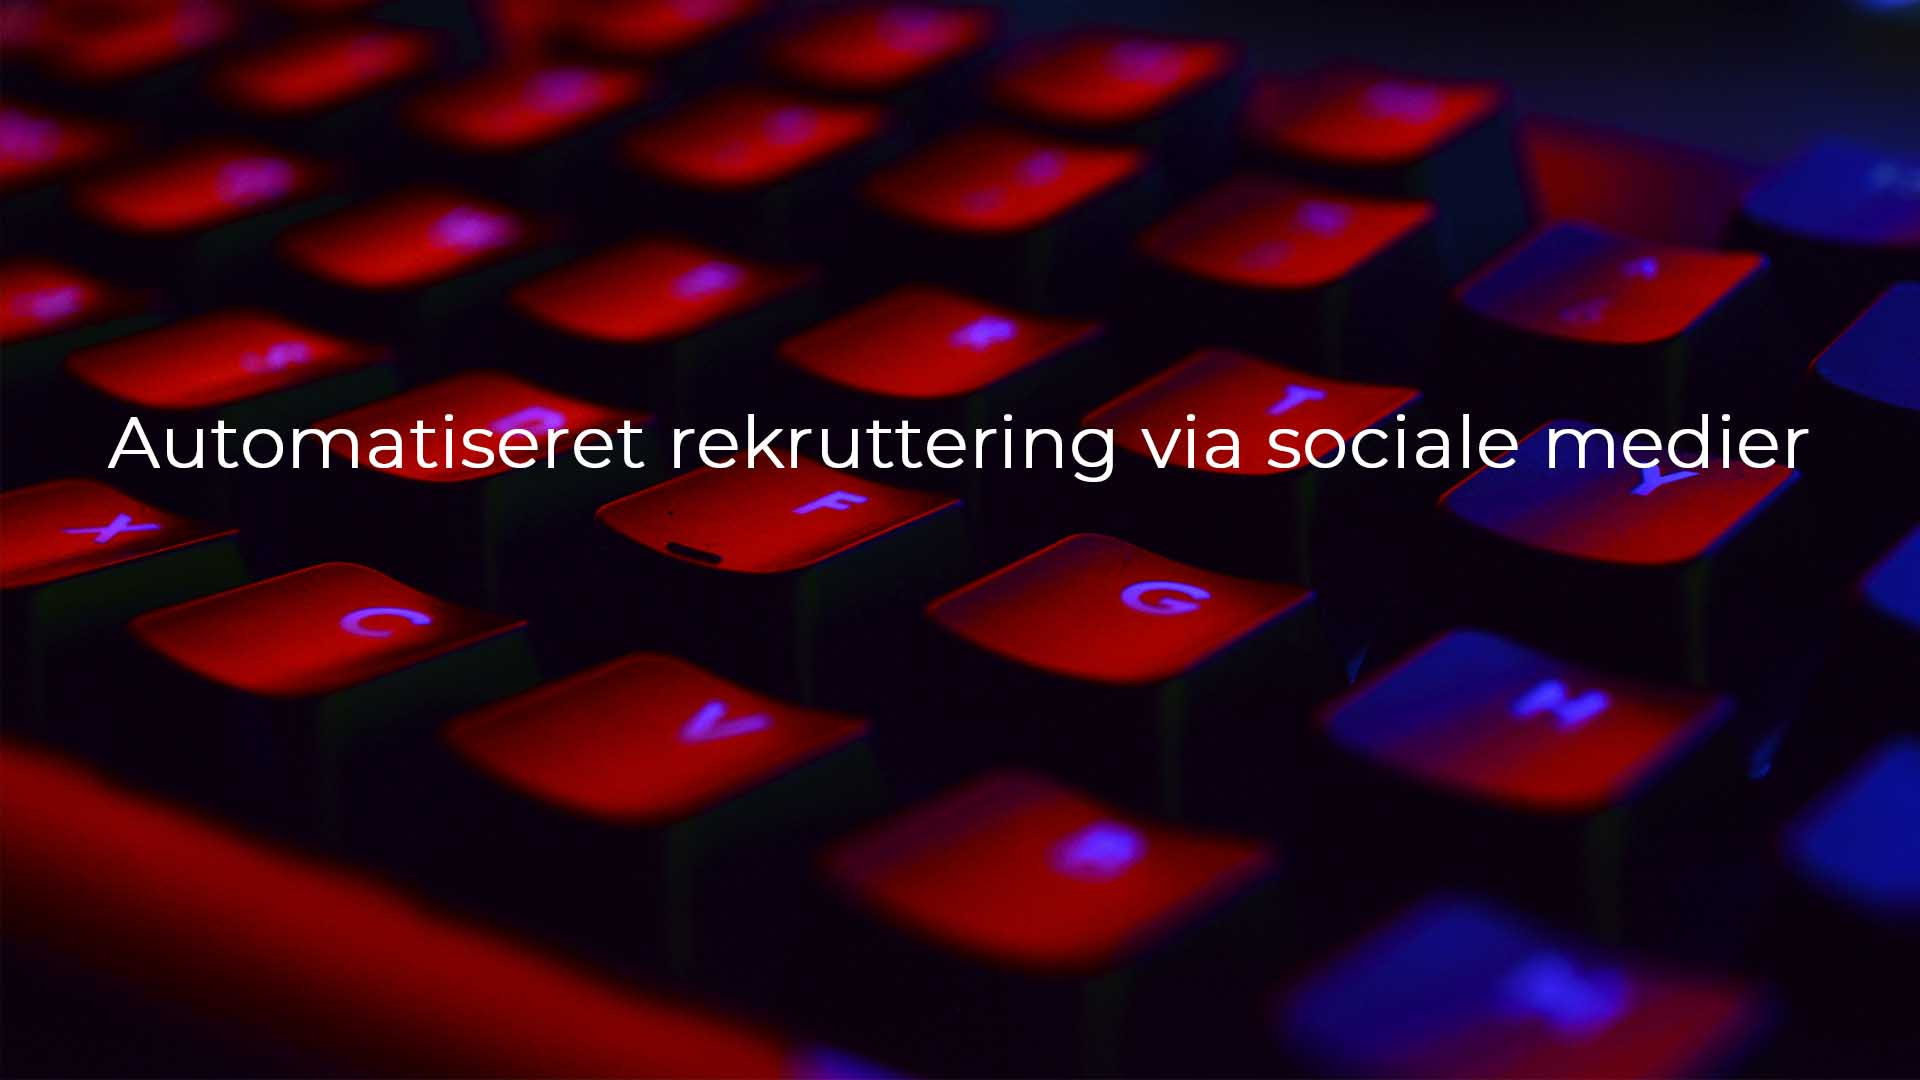 Automatiseret rekruttering via sociale medier